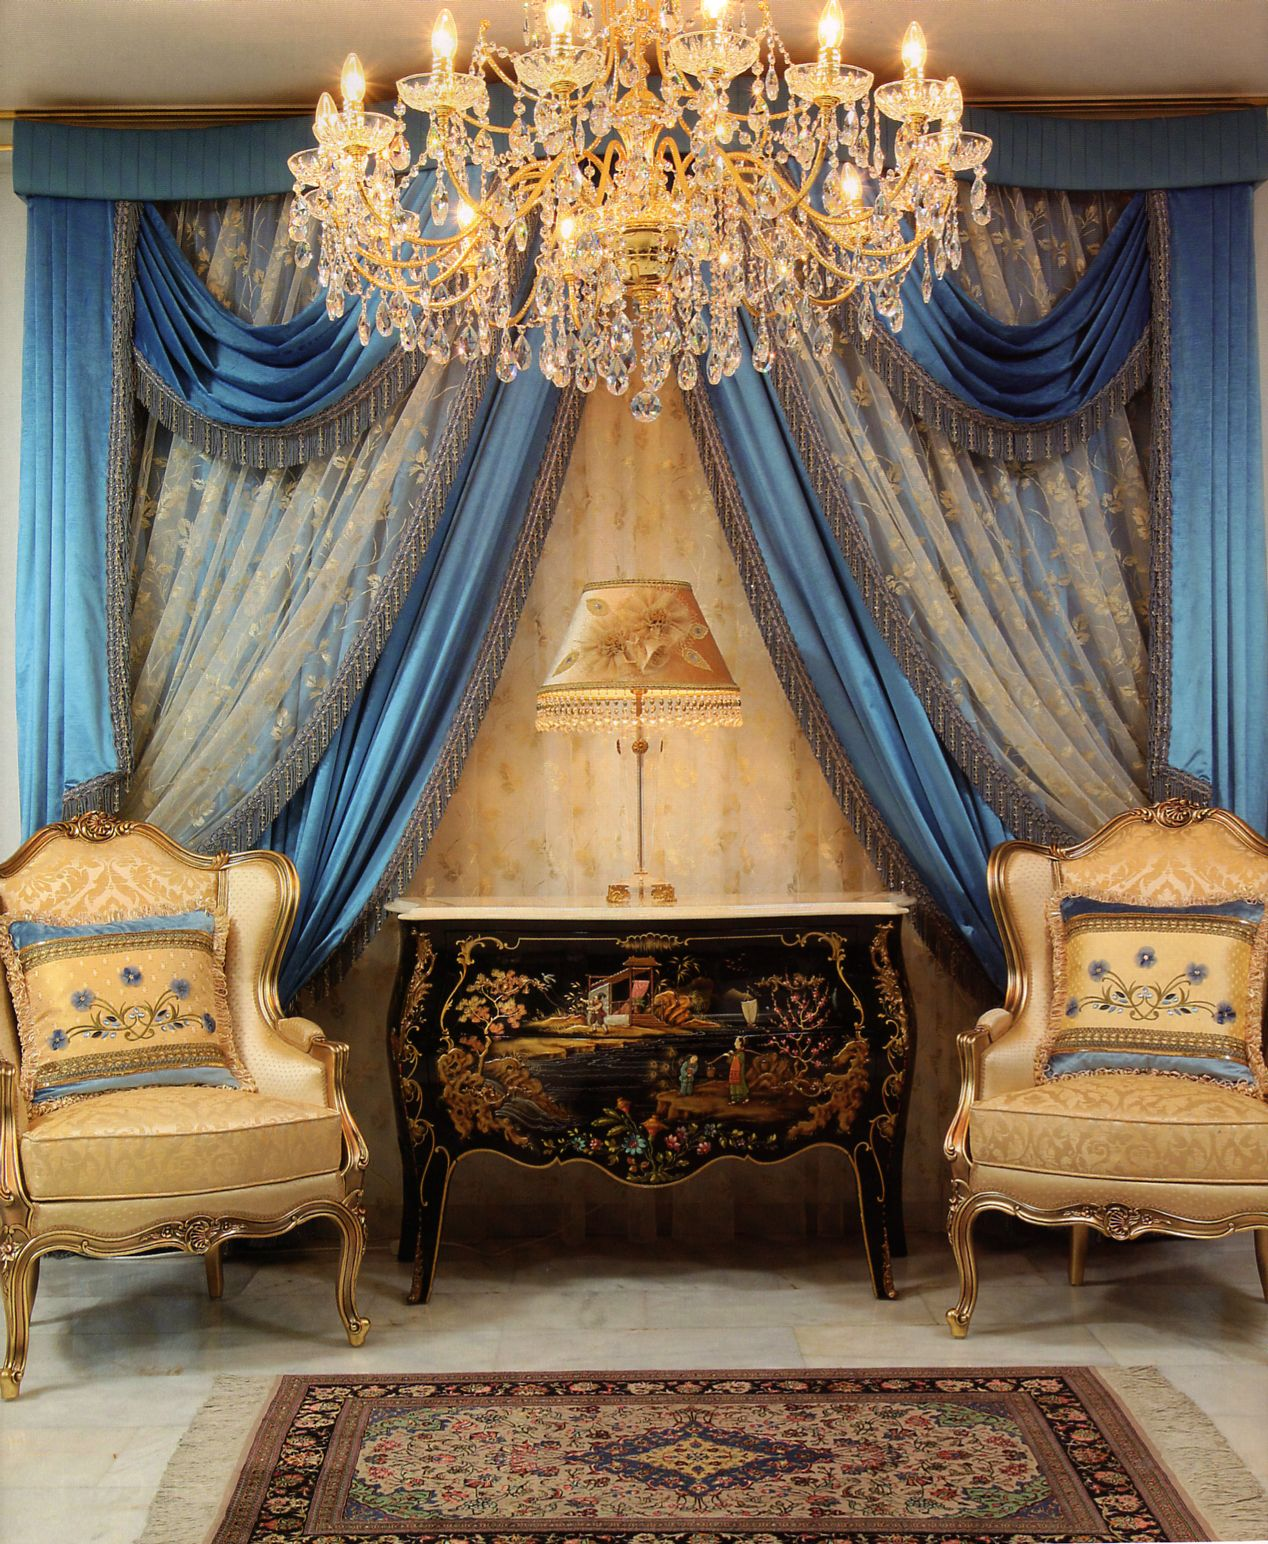 Decorating theme bedrooms maries manor window treatments curtains - Room Cinderella Bedroom Curtains